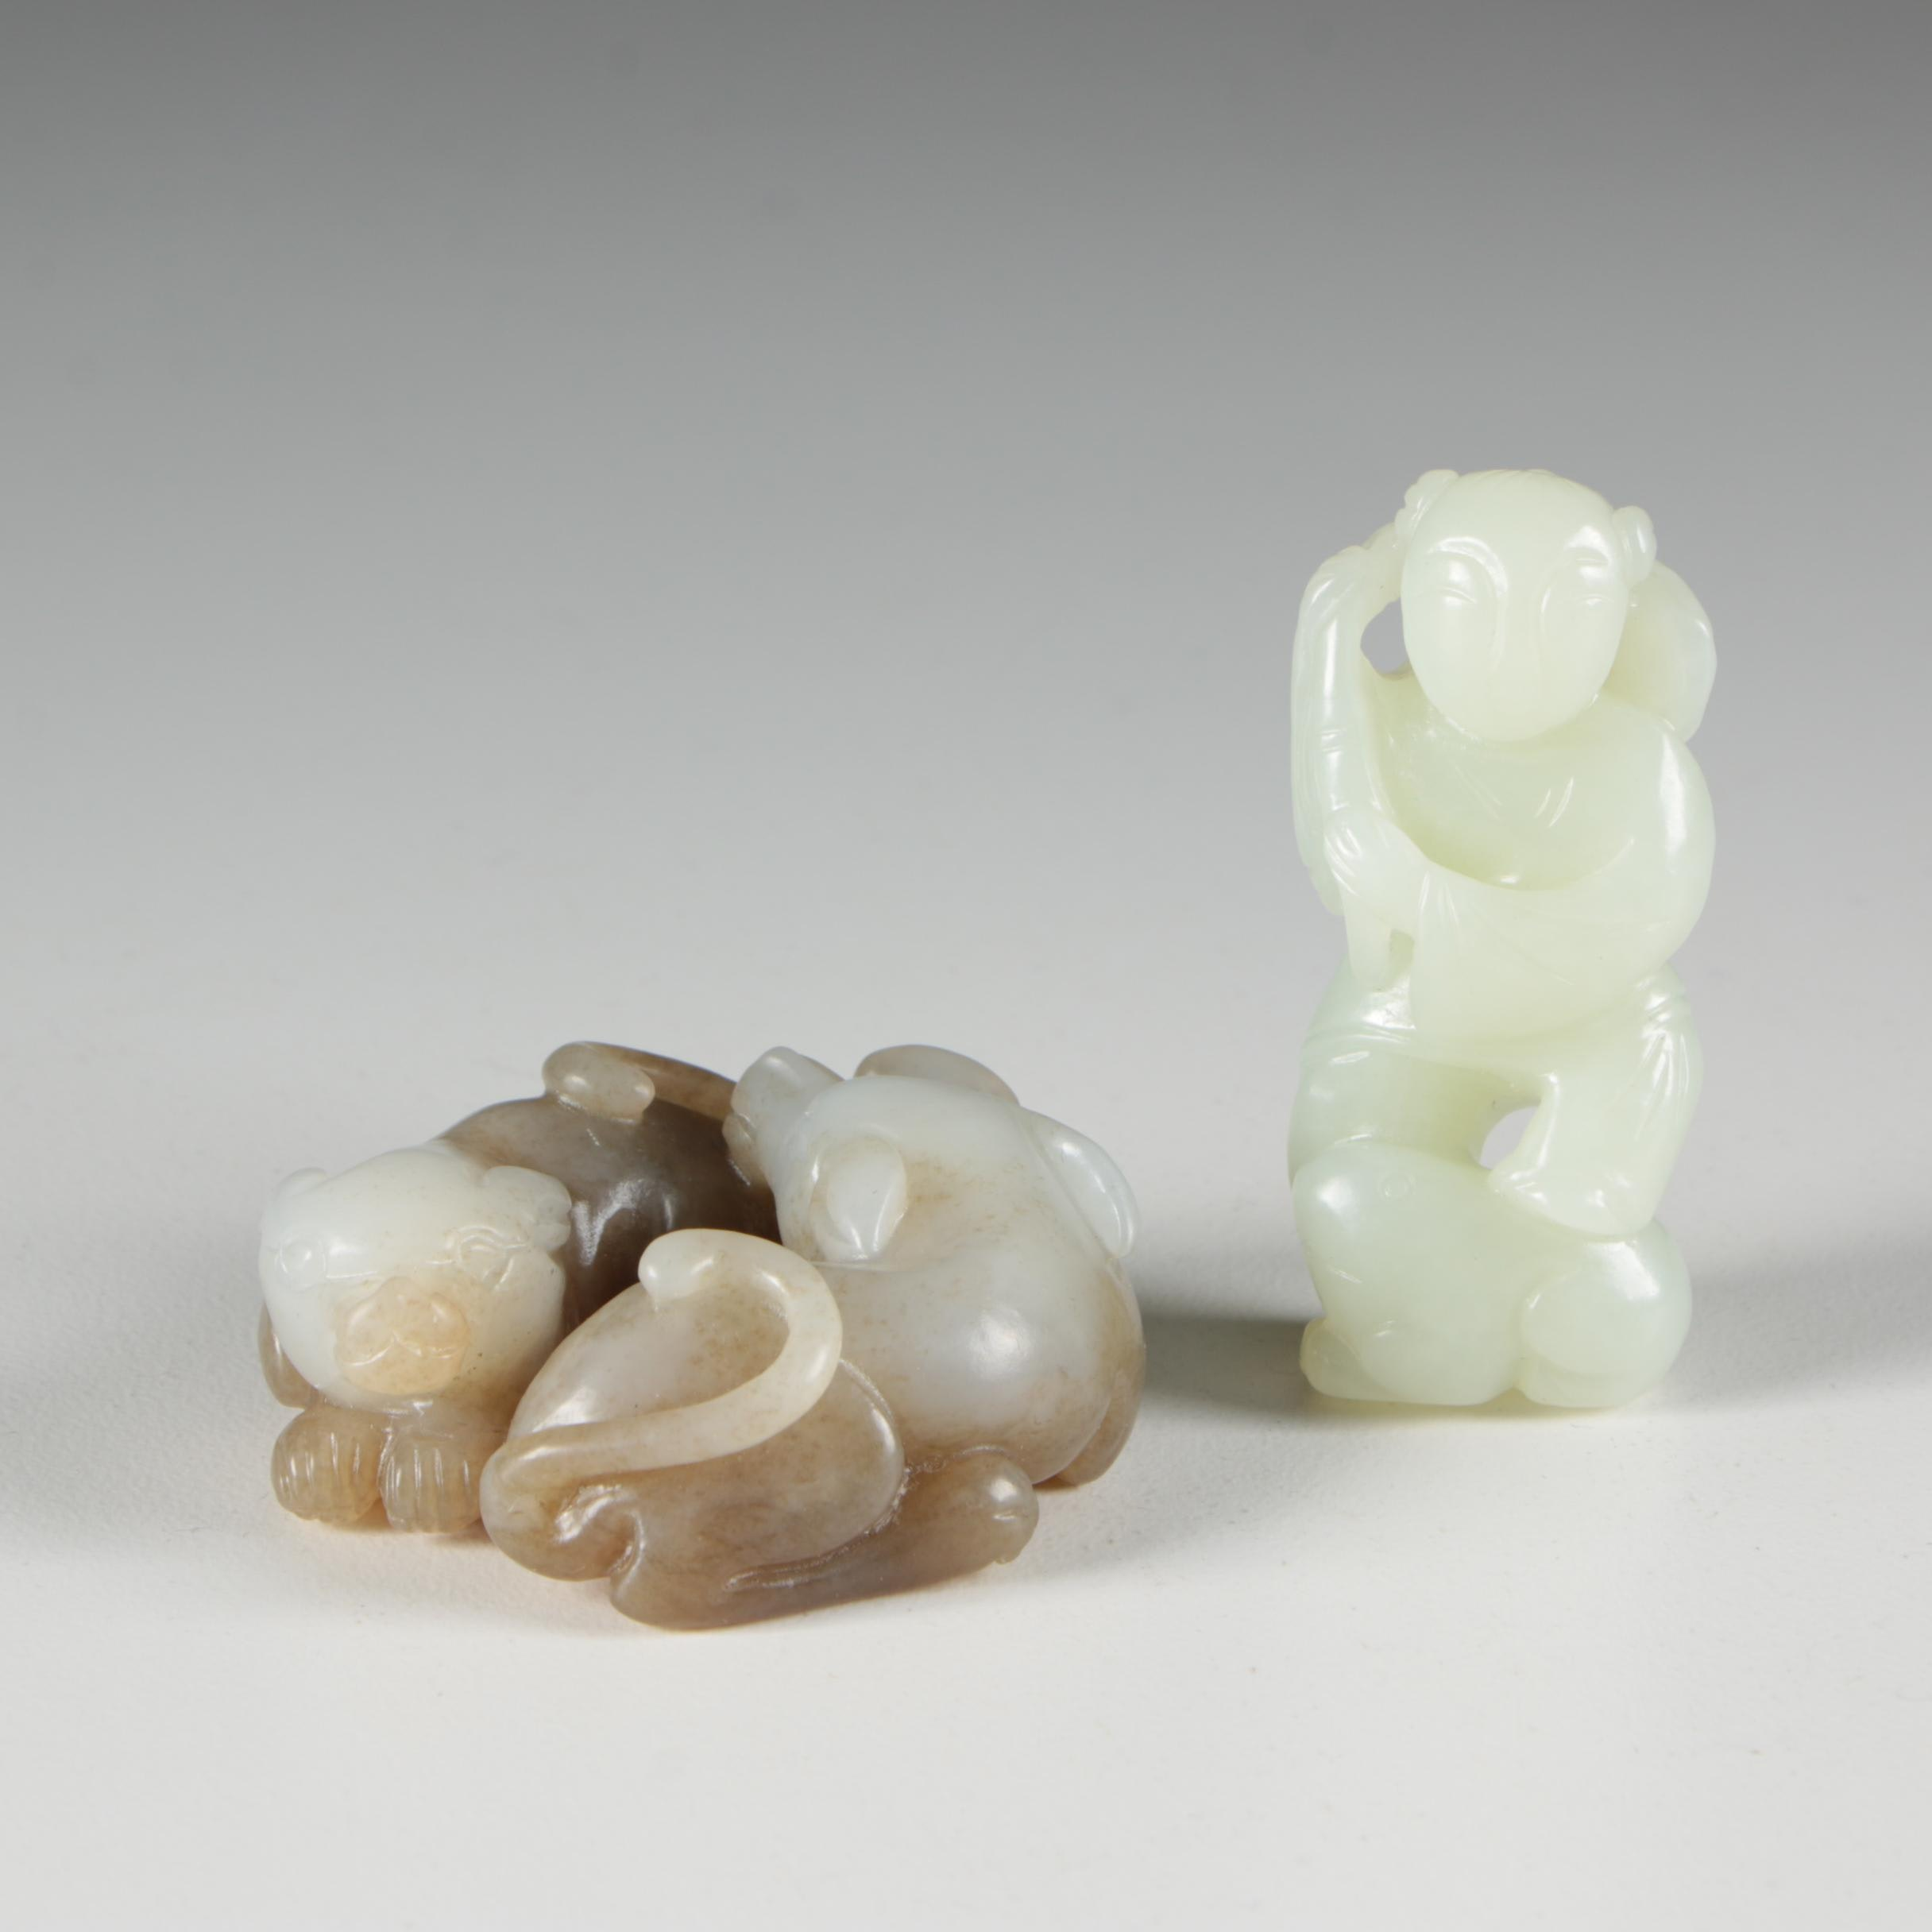 Chinese Carved Nephrite Man and Dog Figurines